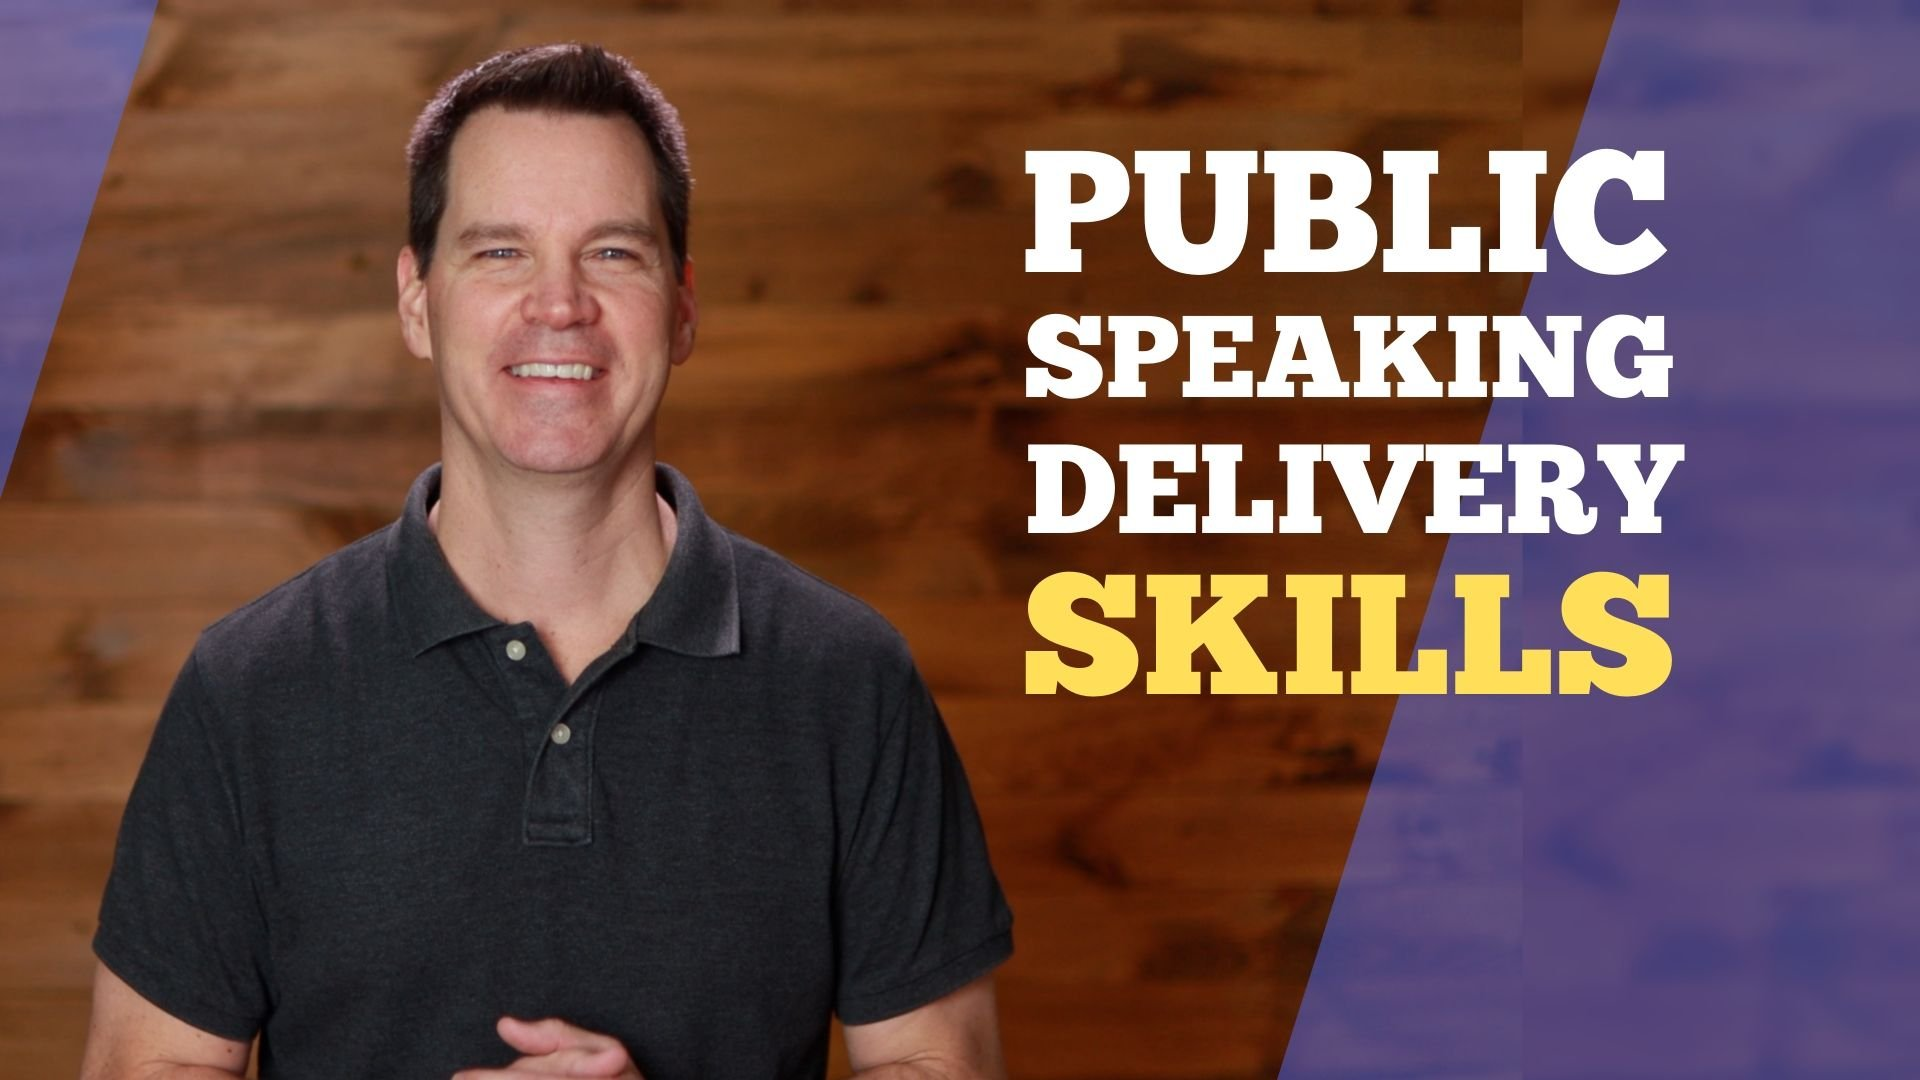 PUBLIC SPEAKING: Confident Delivery Skills | Alex Lyon ...